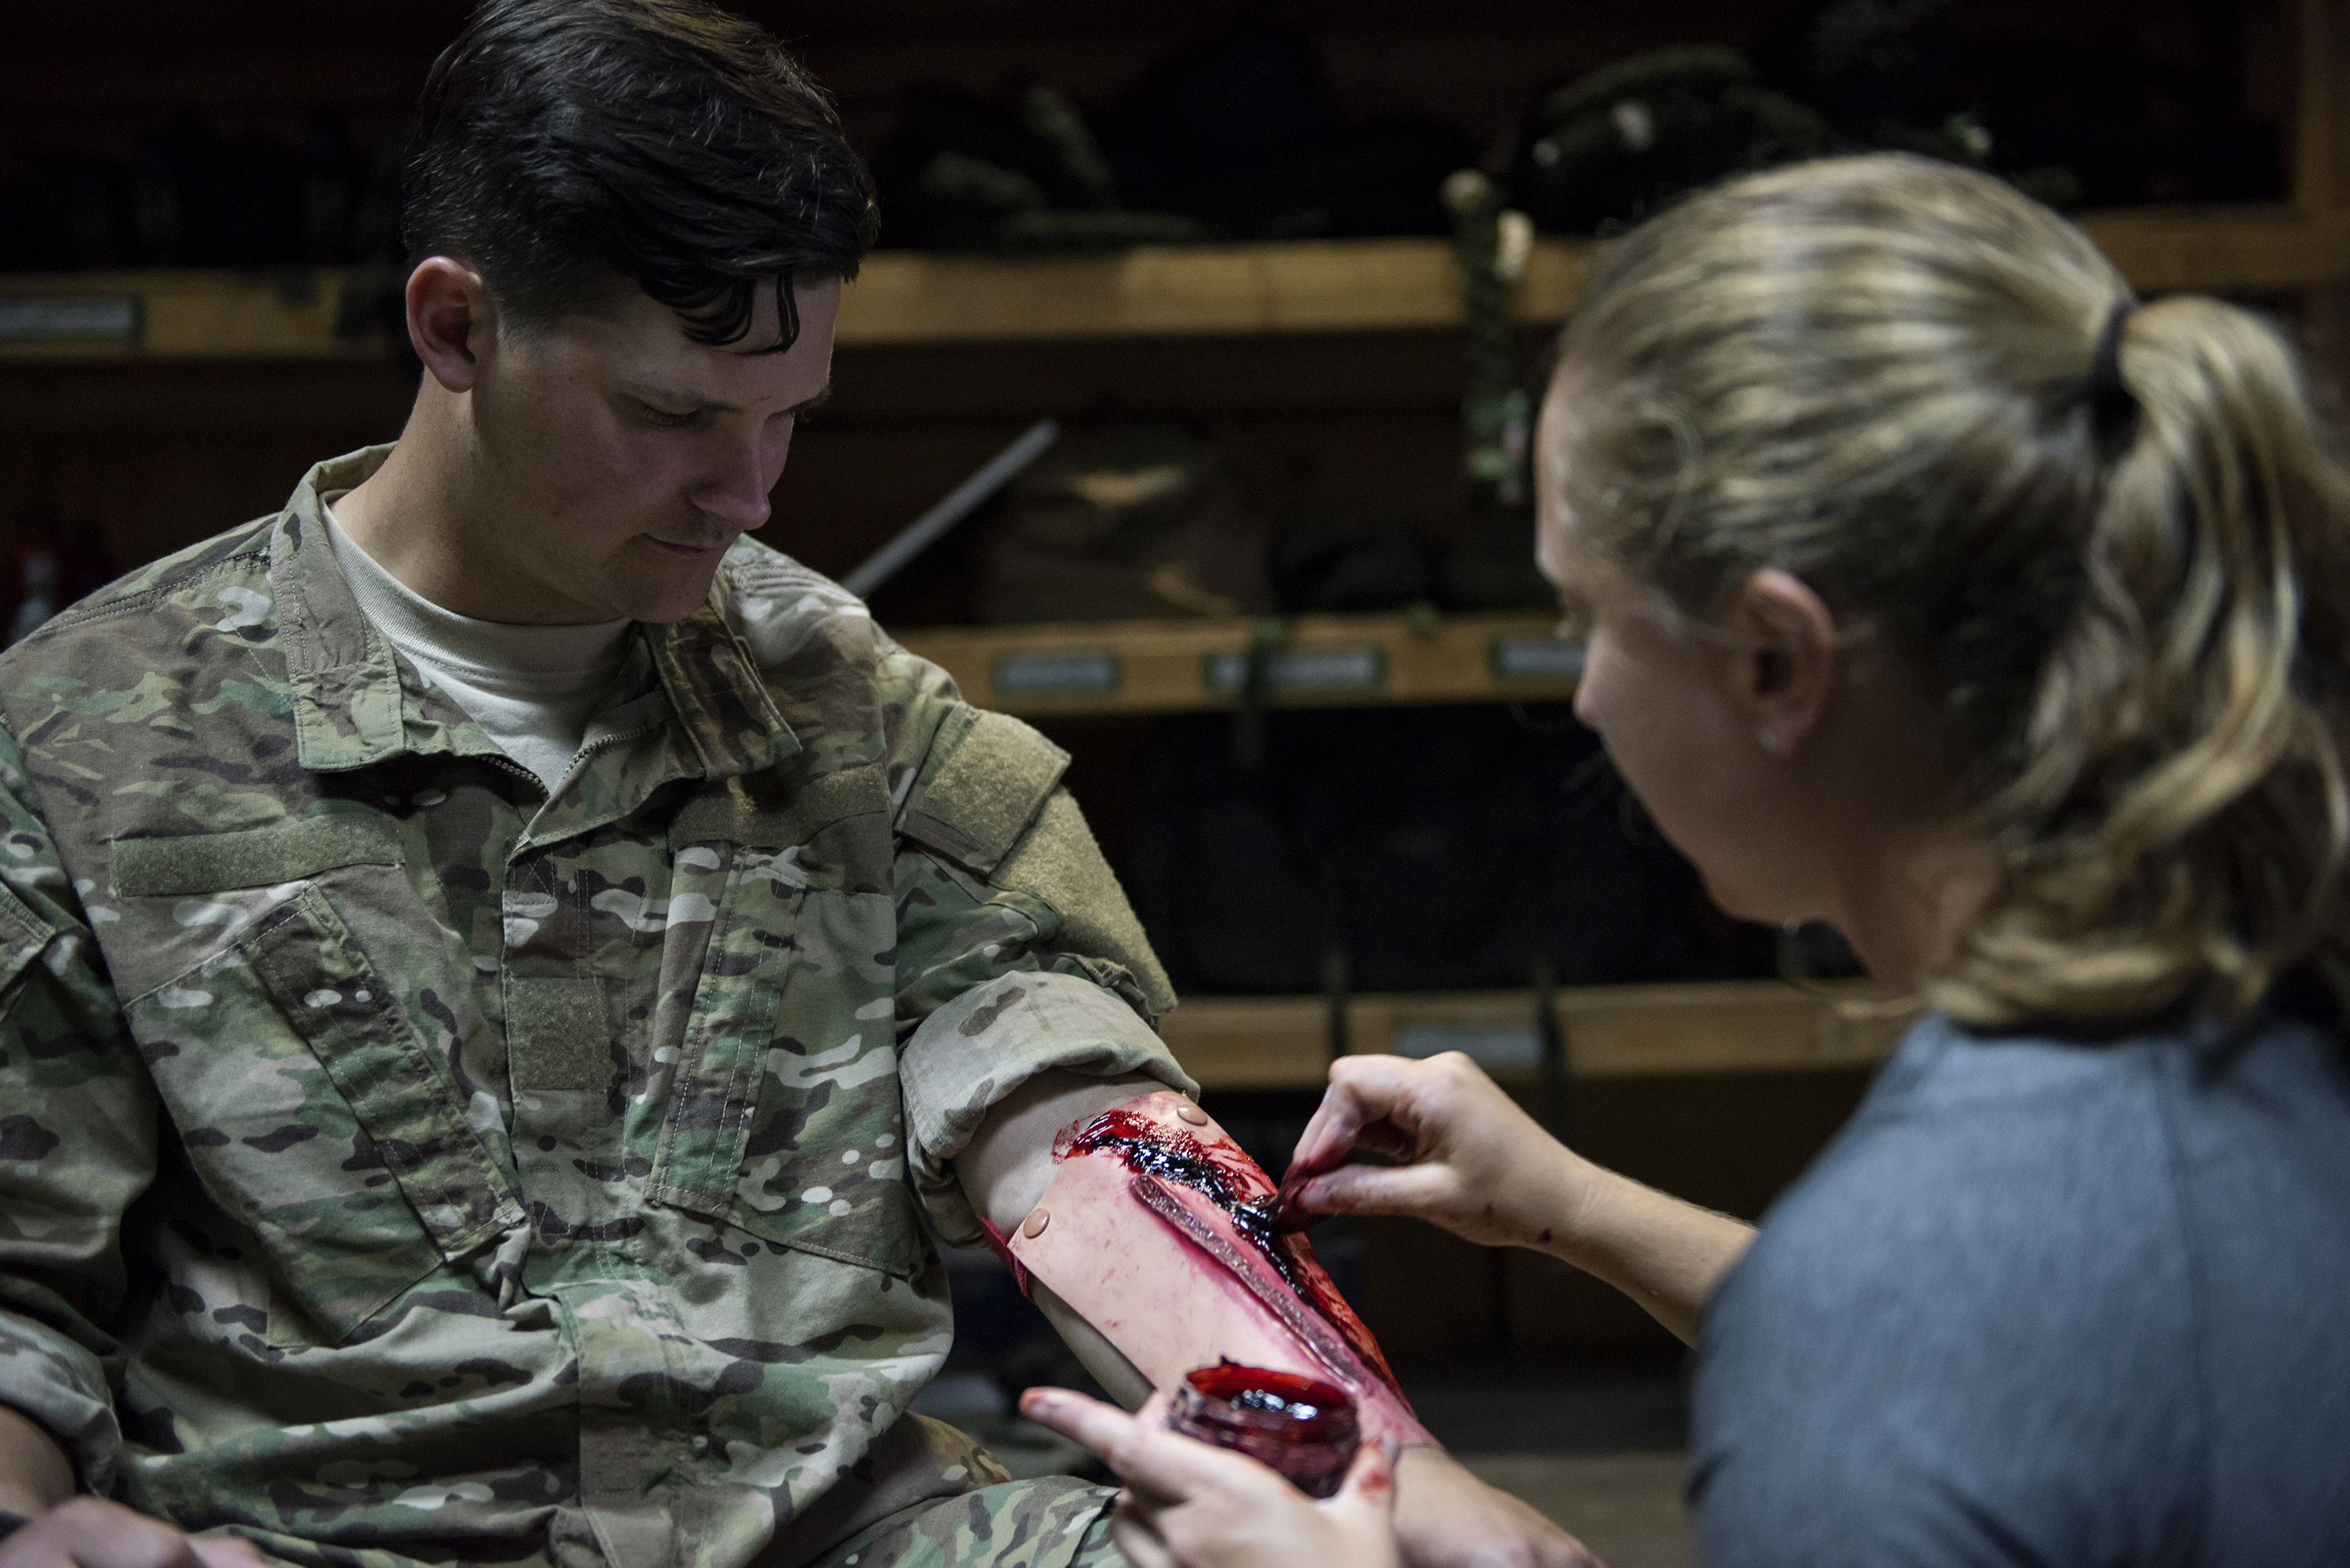 U.S. Air Force Maj. Aspen Terry, a medical officer with the 82nd Expeditionary Rescue Squadron, moulages the arm of Staff Sgt. Alex Stojadinovic, 449th Air Expeditionary Group, on Camp Lemonnier, Djibouti, April 24, 2018. As part of a joint mass casualty training exercise, service members performed various tasks in order to locate, secure and rescue simulated casualties. (U.S. Air National Guard photo by Master Sgt. Sarah Mattison)